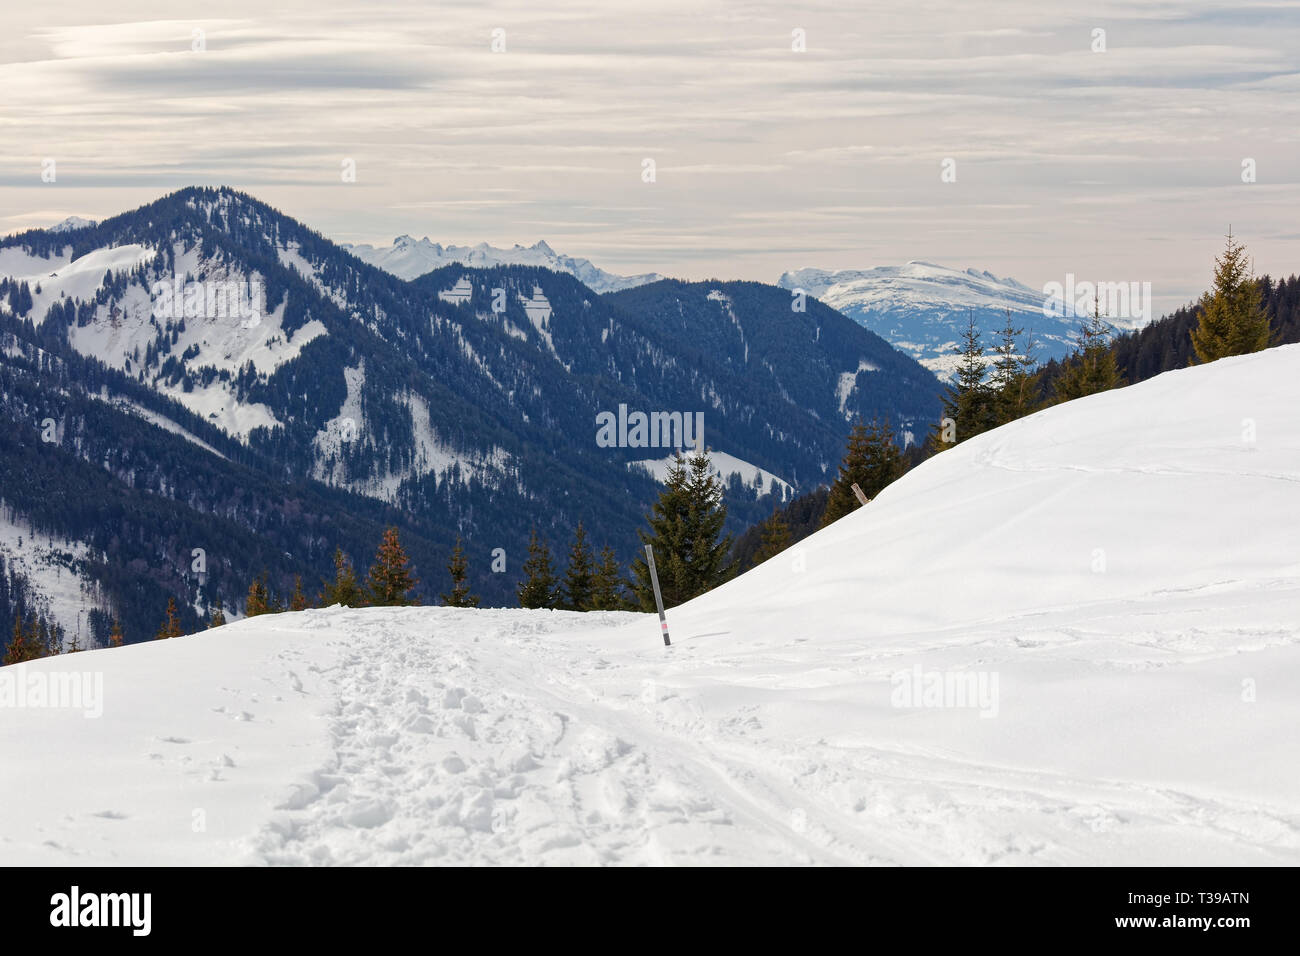 Views from snow covered Furkajoch alpine road with Laternsertal valley and Appenzell Alps in background - Vorarlberg, Austria - Stock Image